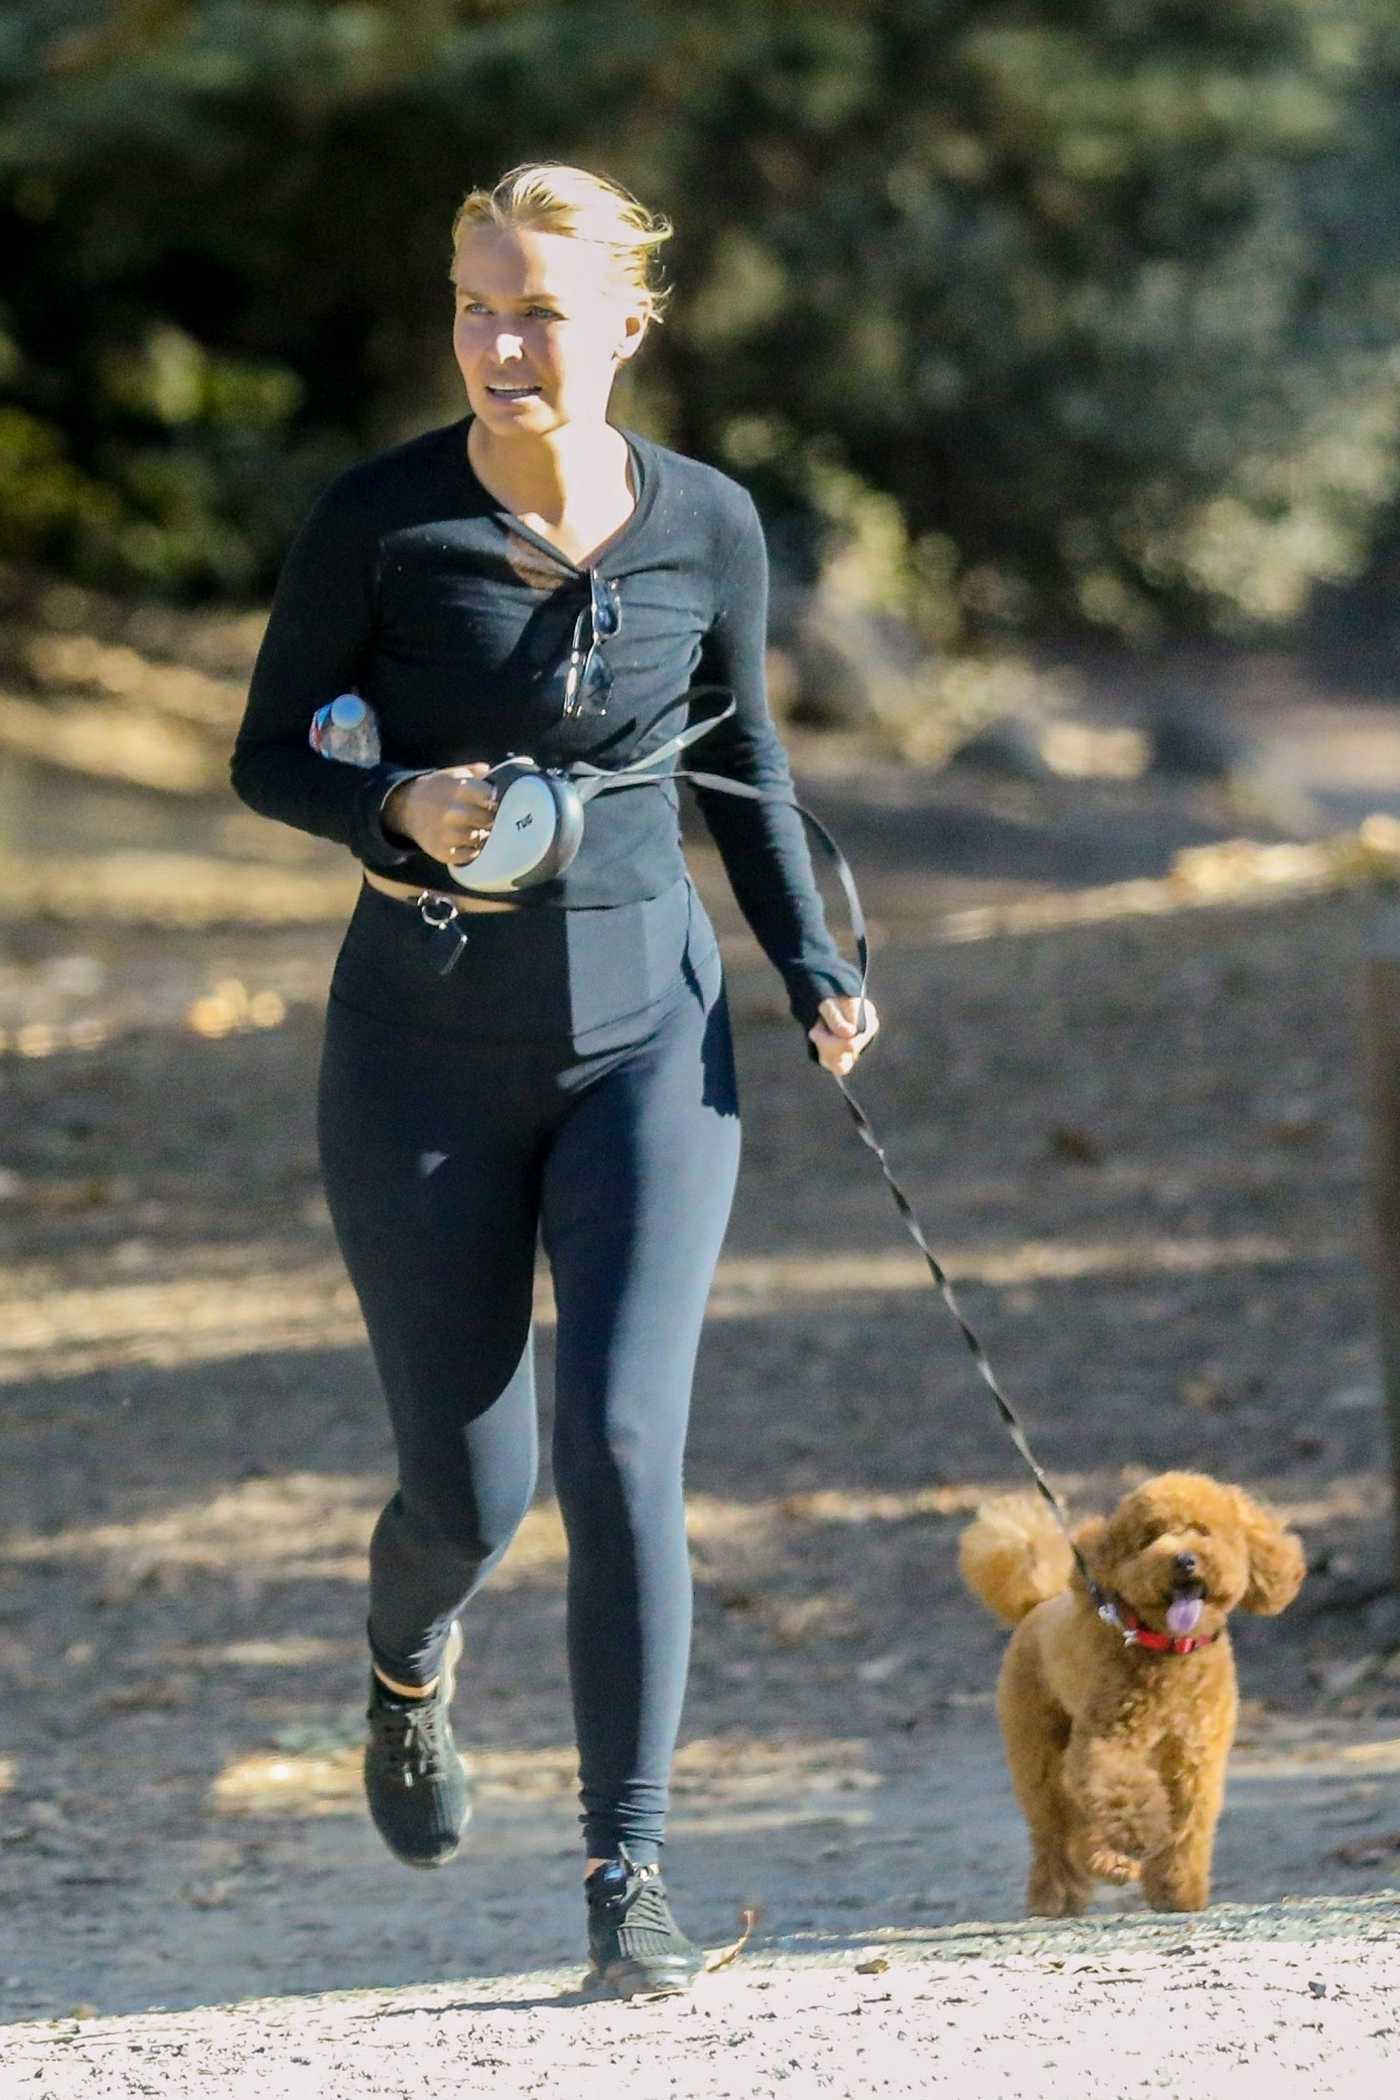 Lara Bingle in a Black Leggings Walks Her Puppy in Hollywood Hills 09/27/2020